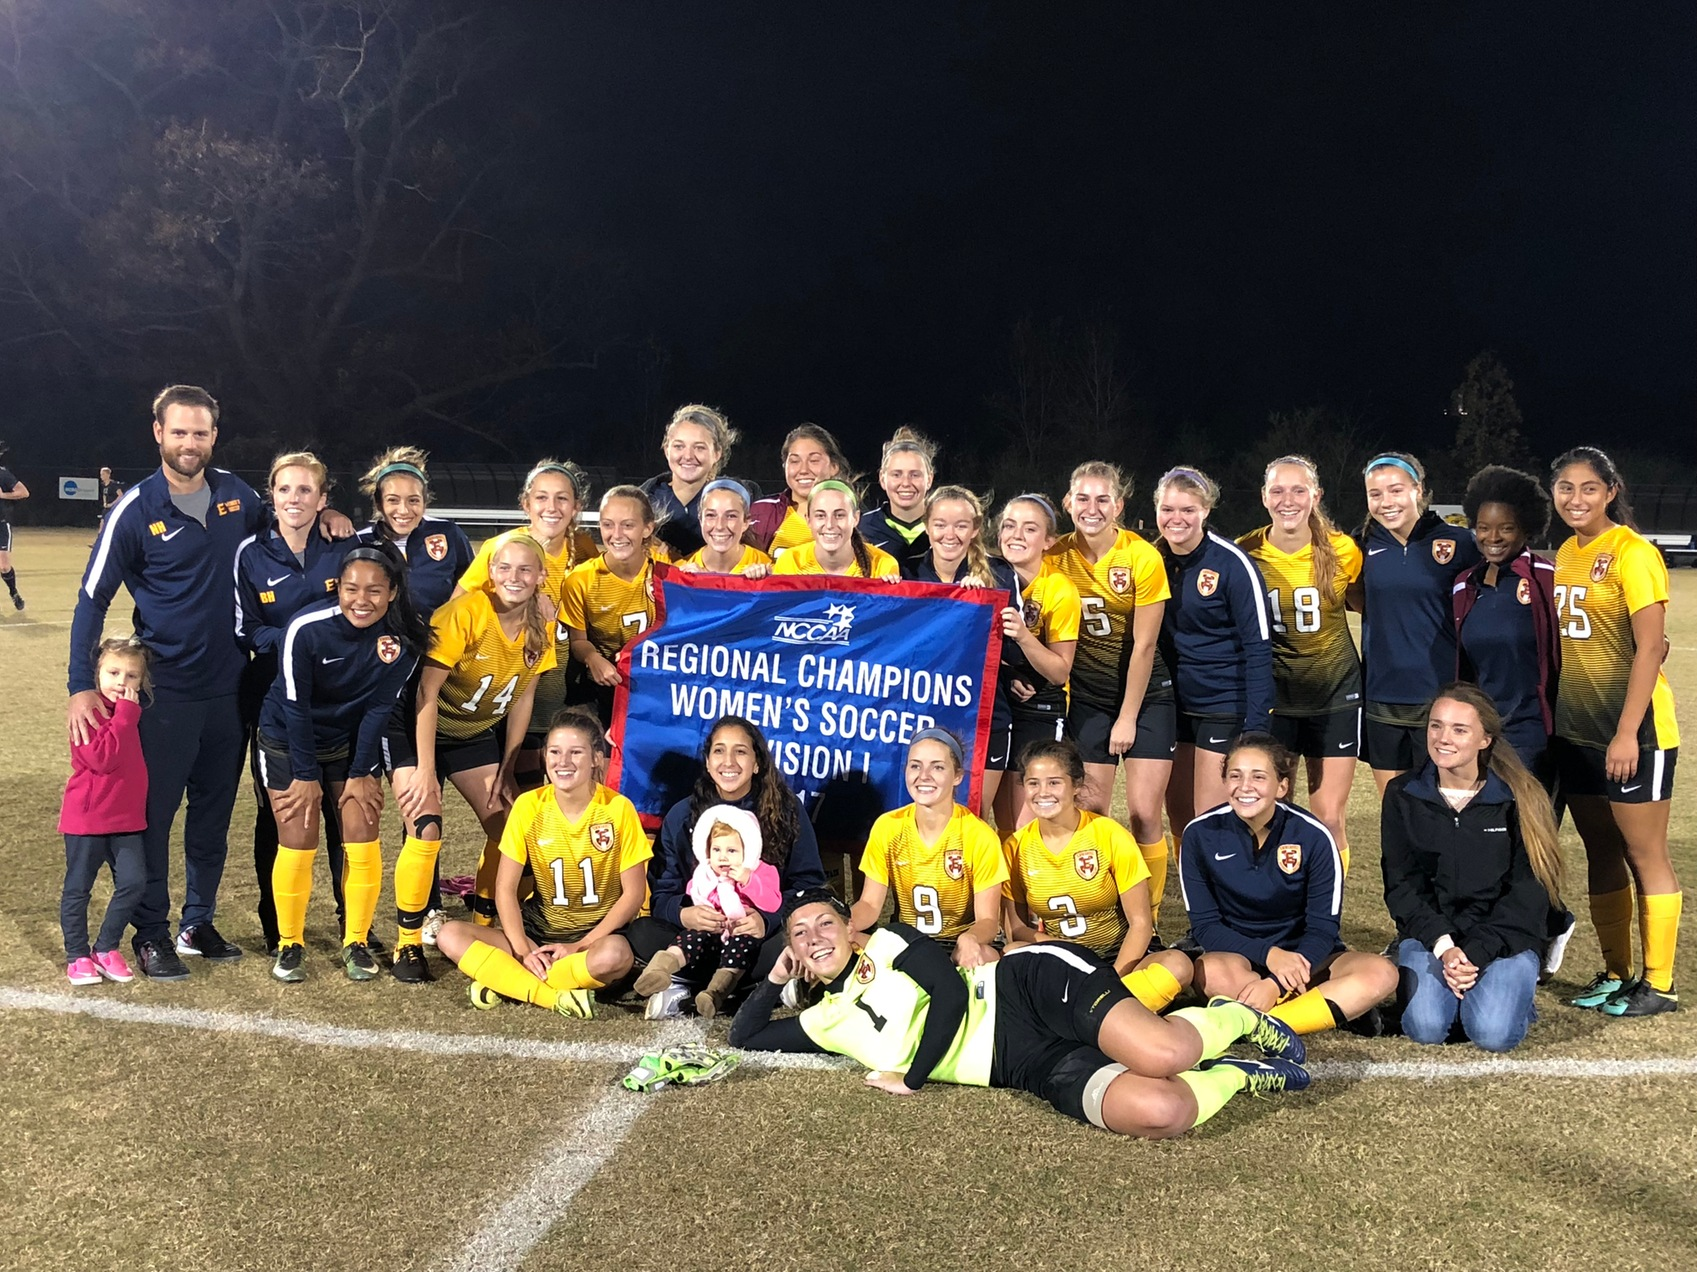 Women's Soccer Captures NCCAA South Region Championship and Advances to Nationals!